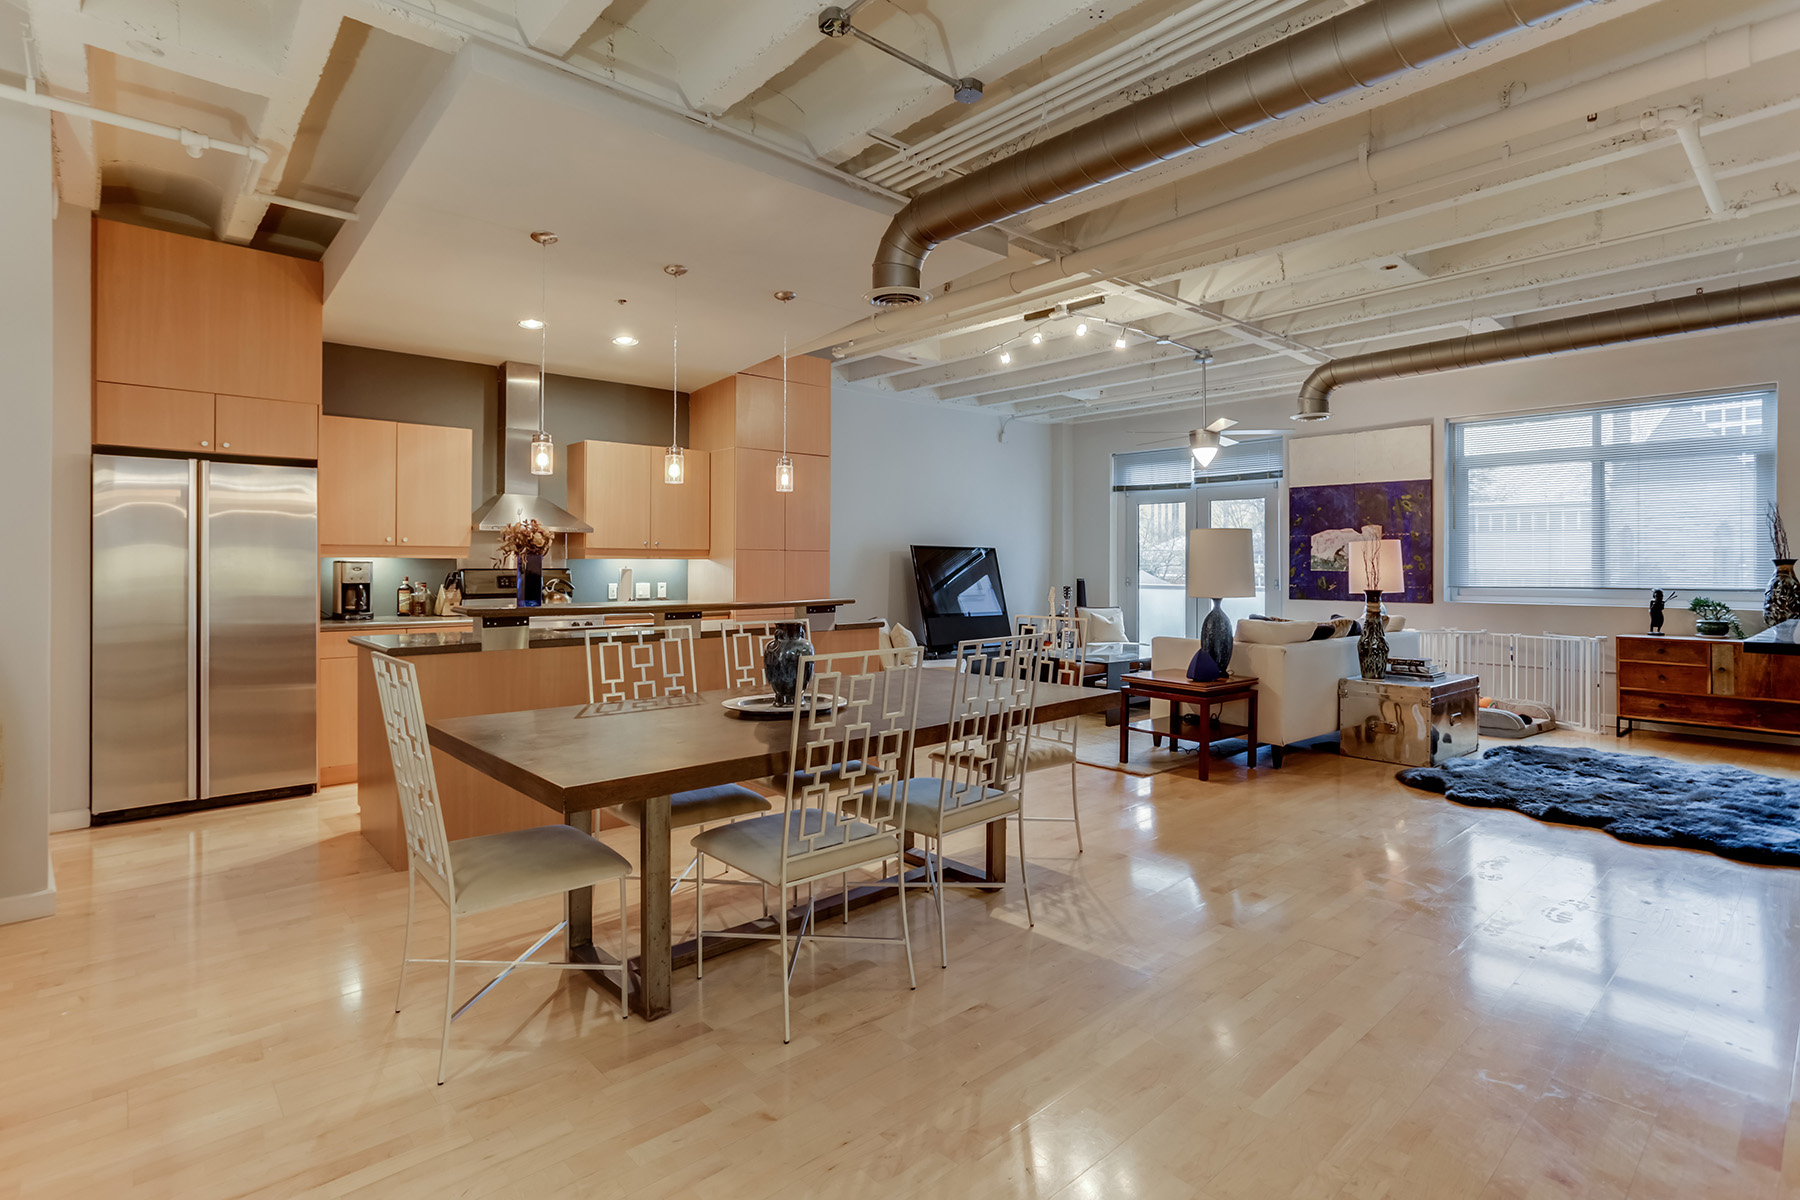 Condominium for Rent at Easy, Elegant Living in a Boutique Loft in the Heart of Midtown 805 Peachtree Street NE No. 201 Atlanta, Georgia 30308 United States